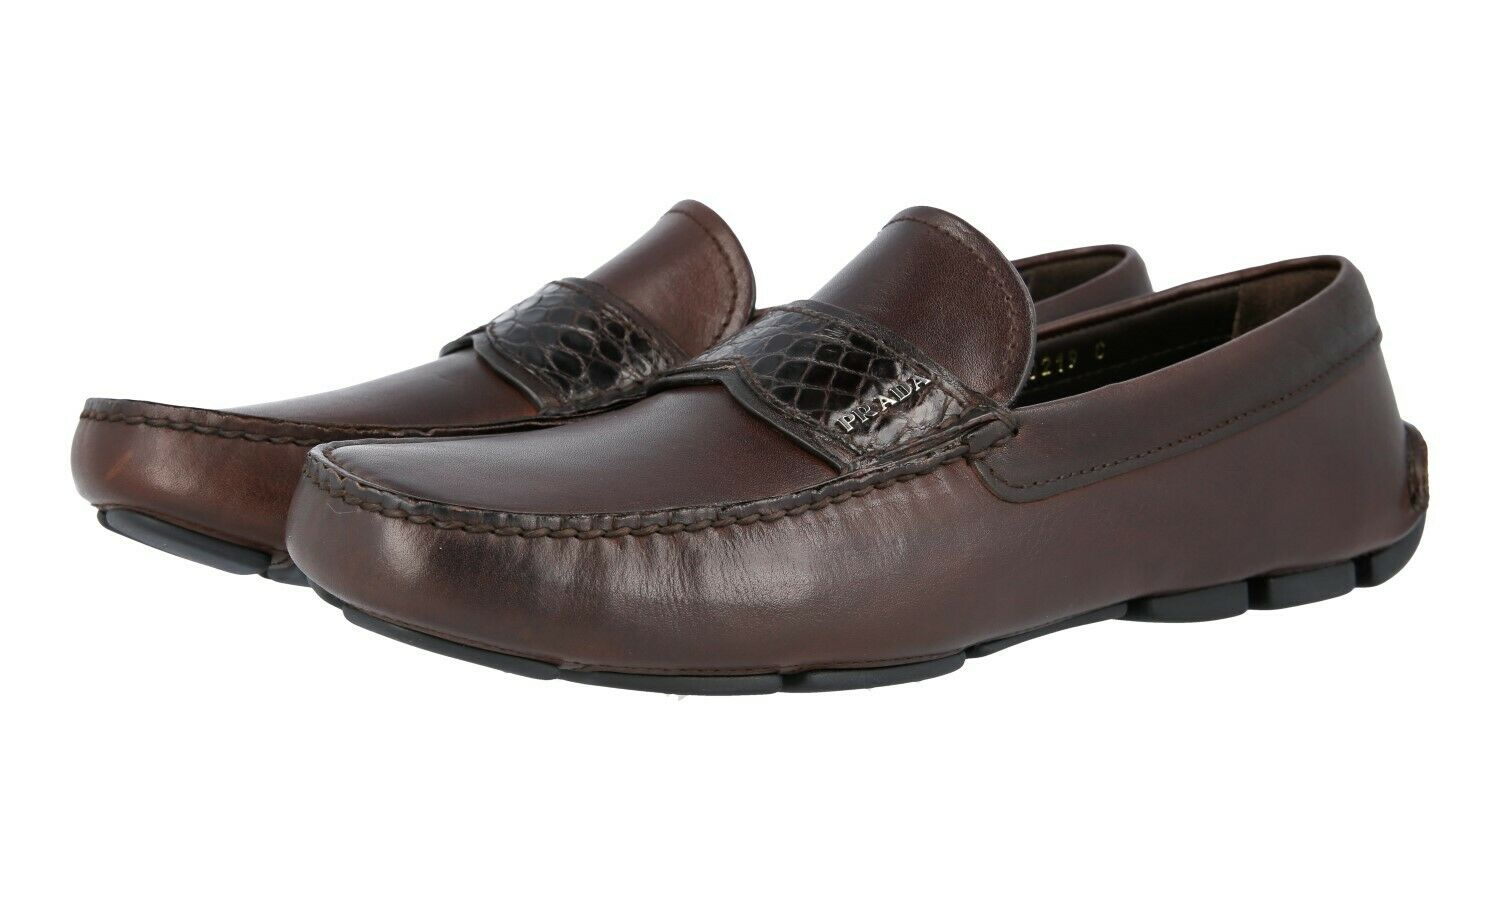 LUXUS PRADA BUSINESS LOAFER SCHUHE 2DD141 brown LEDER + KROKO N